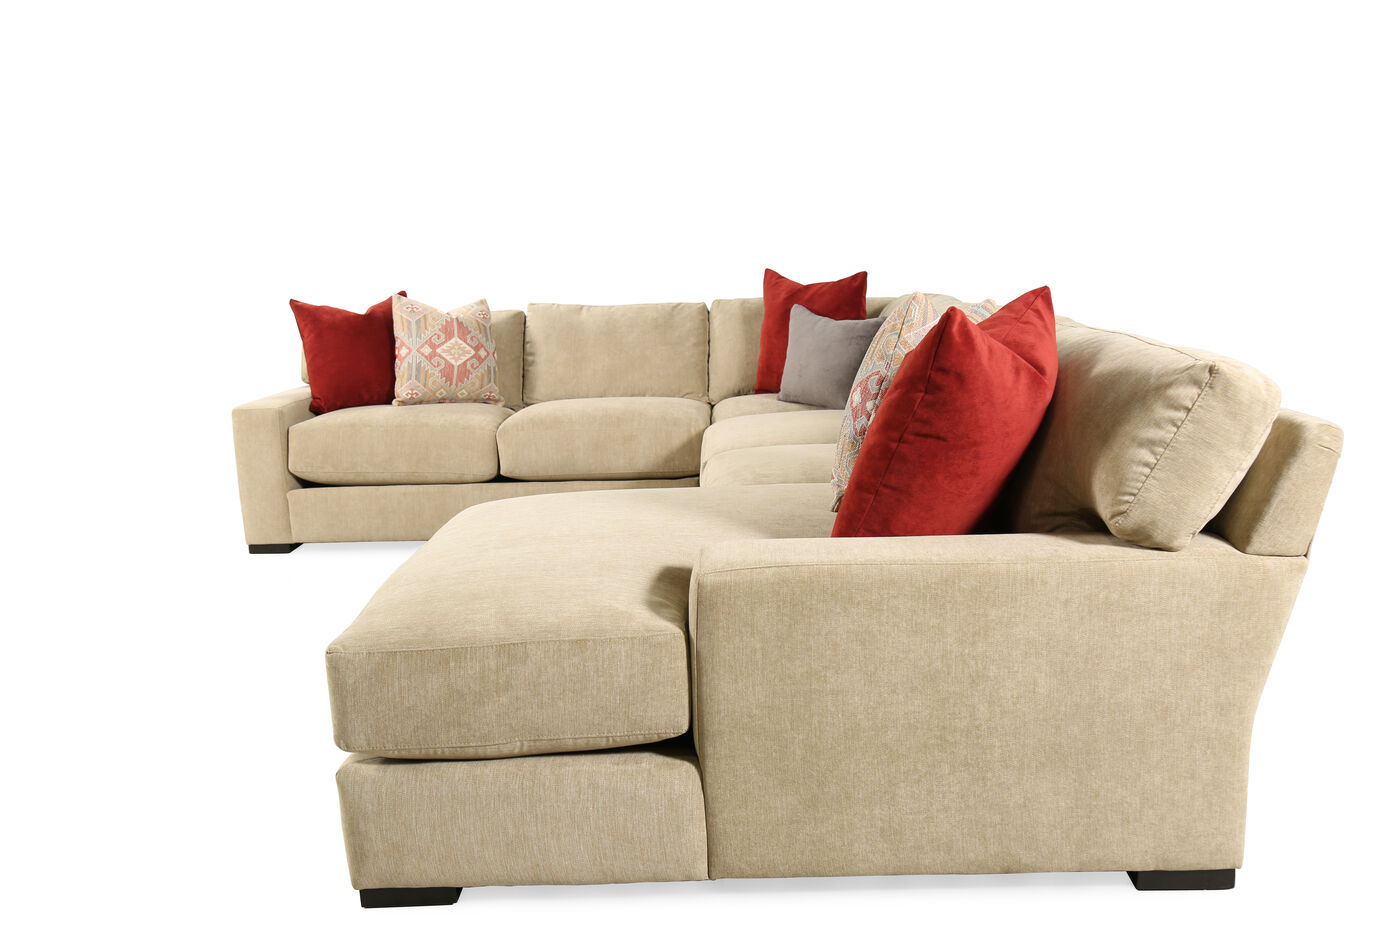 Four piece microfiber 218quot sectional in milk chocolate for 4 piece sectional sofa microfiber